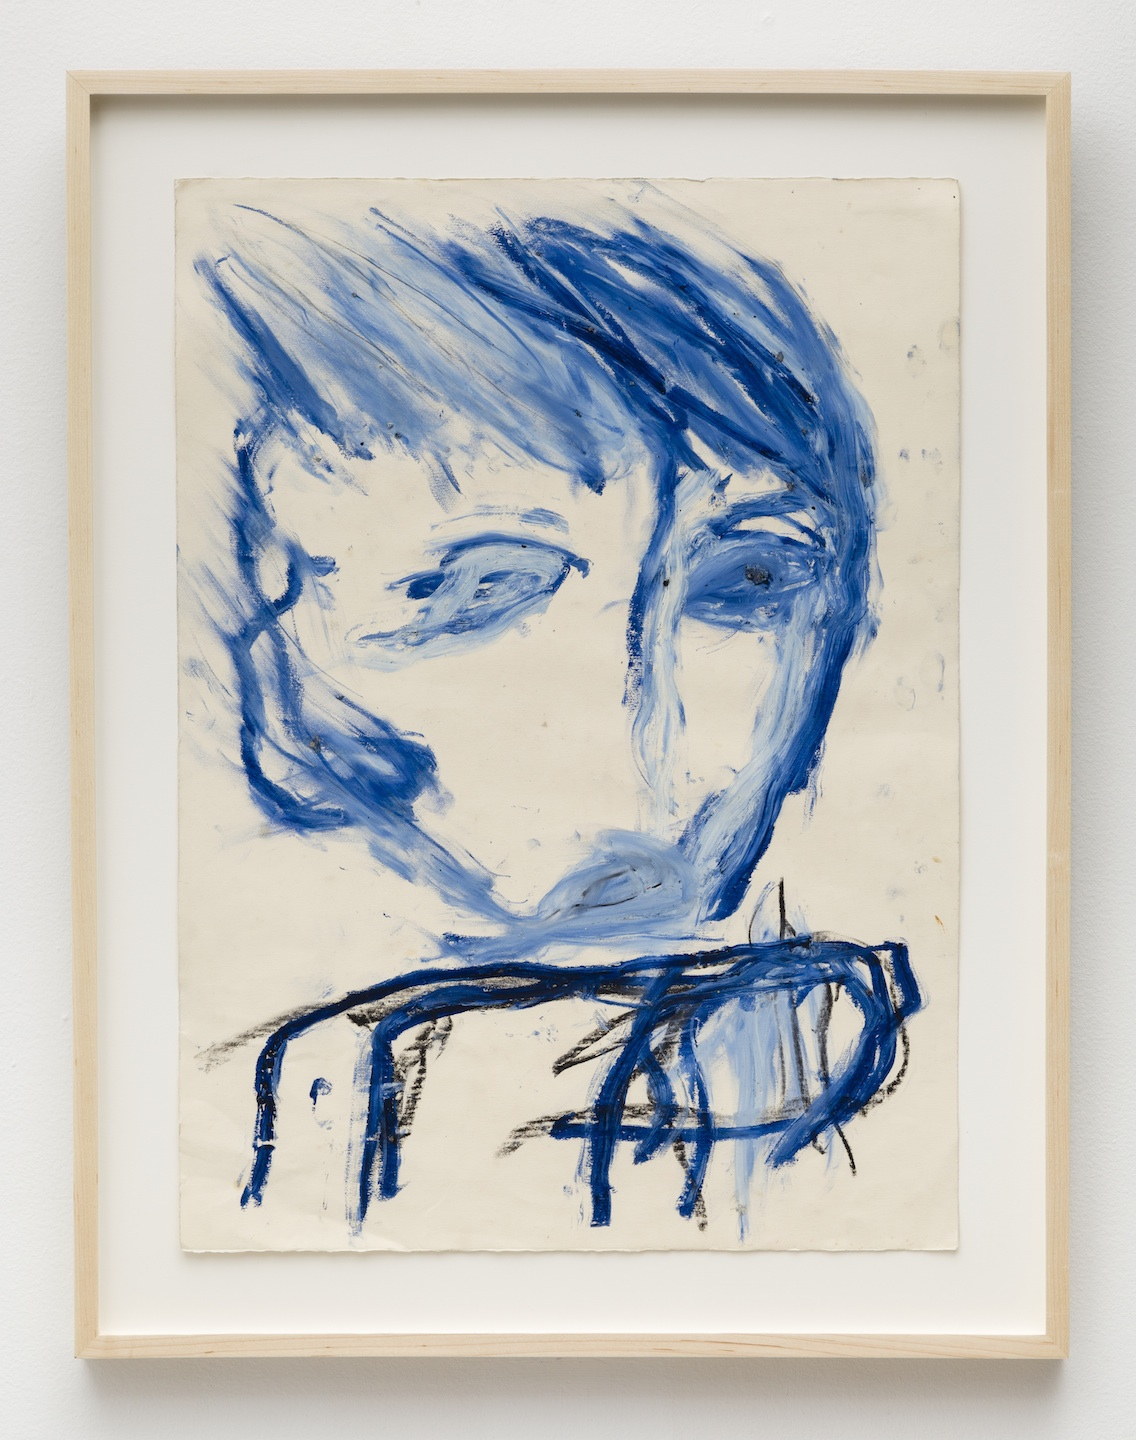 Dan Asher,  Untitled , 1982, oil stick on paper, 26 x 19 in.